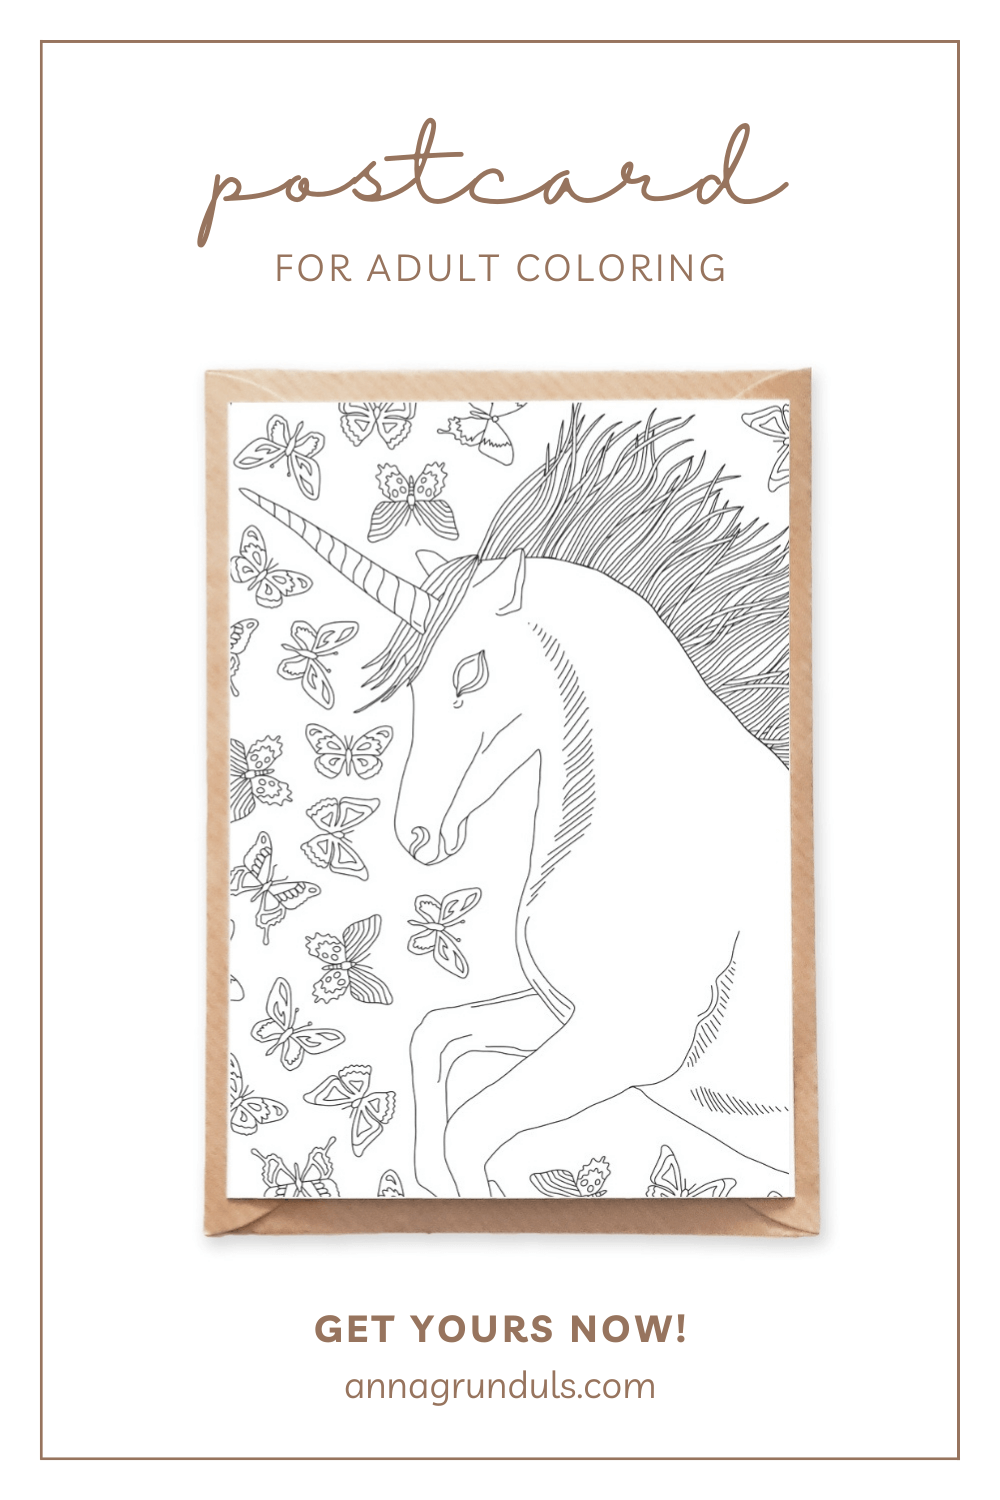 unicorn postcard for adult coloring pinterest pin